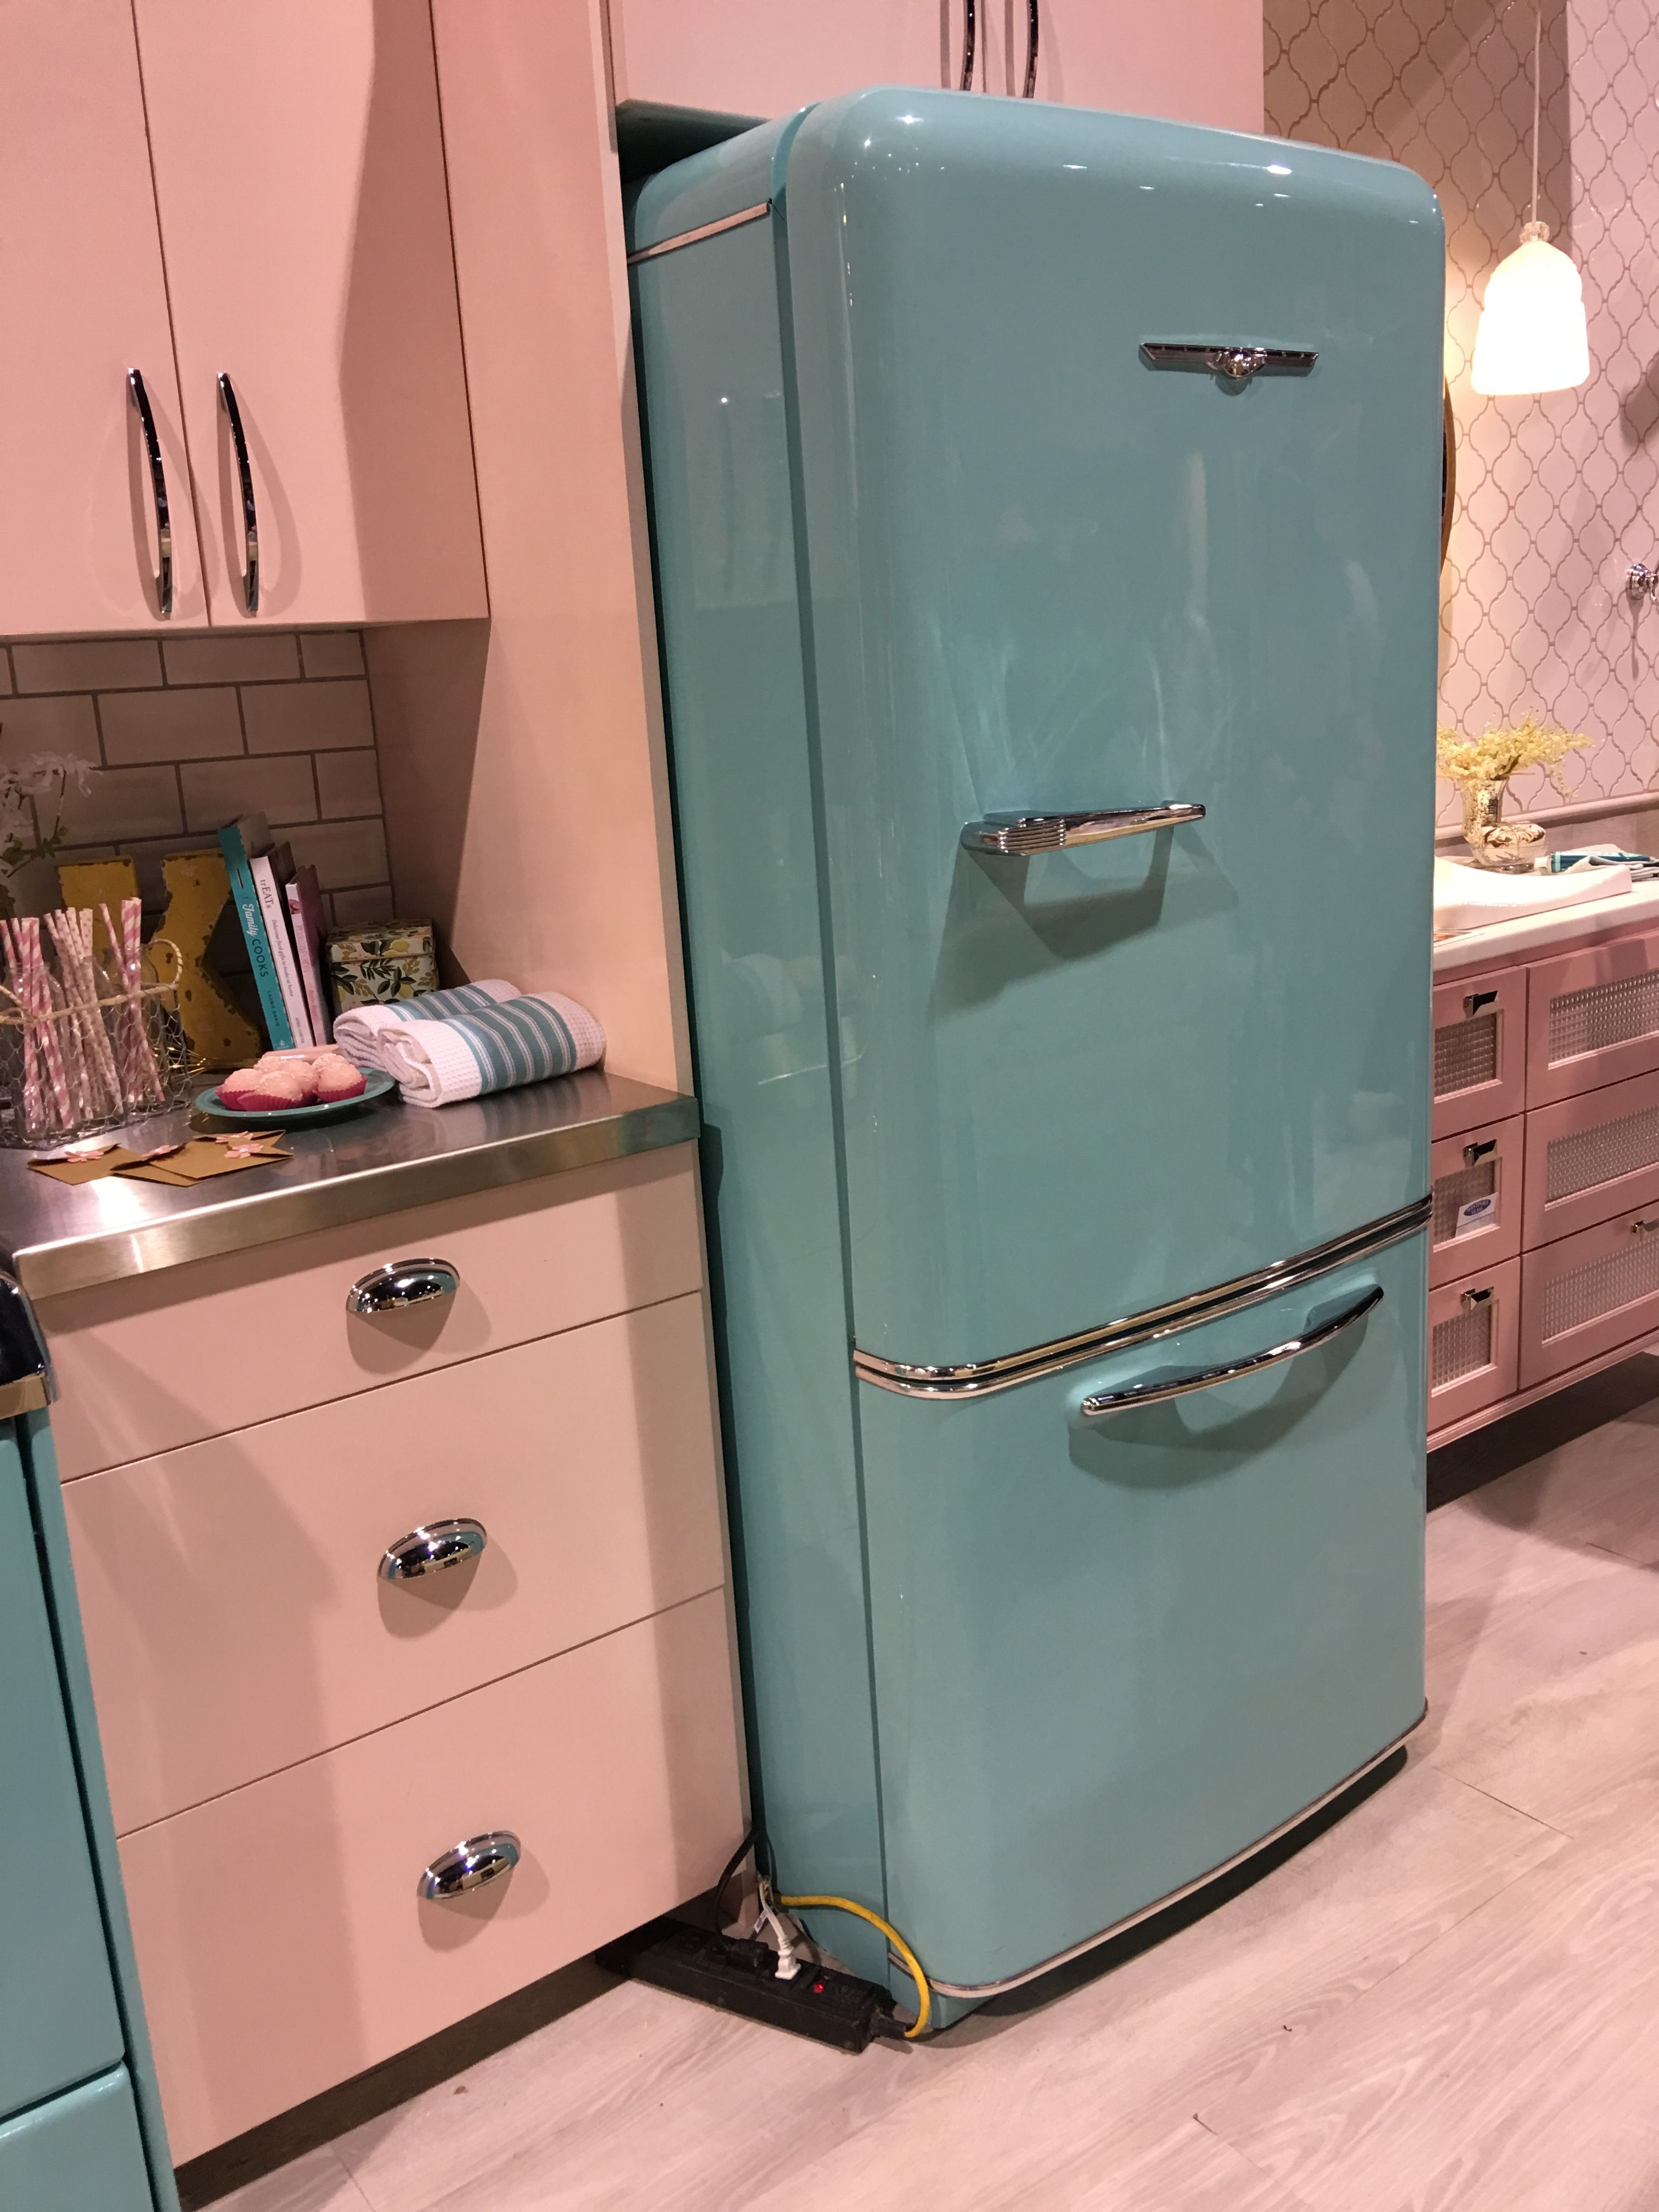 Retro Appliances, Vintage